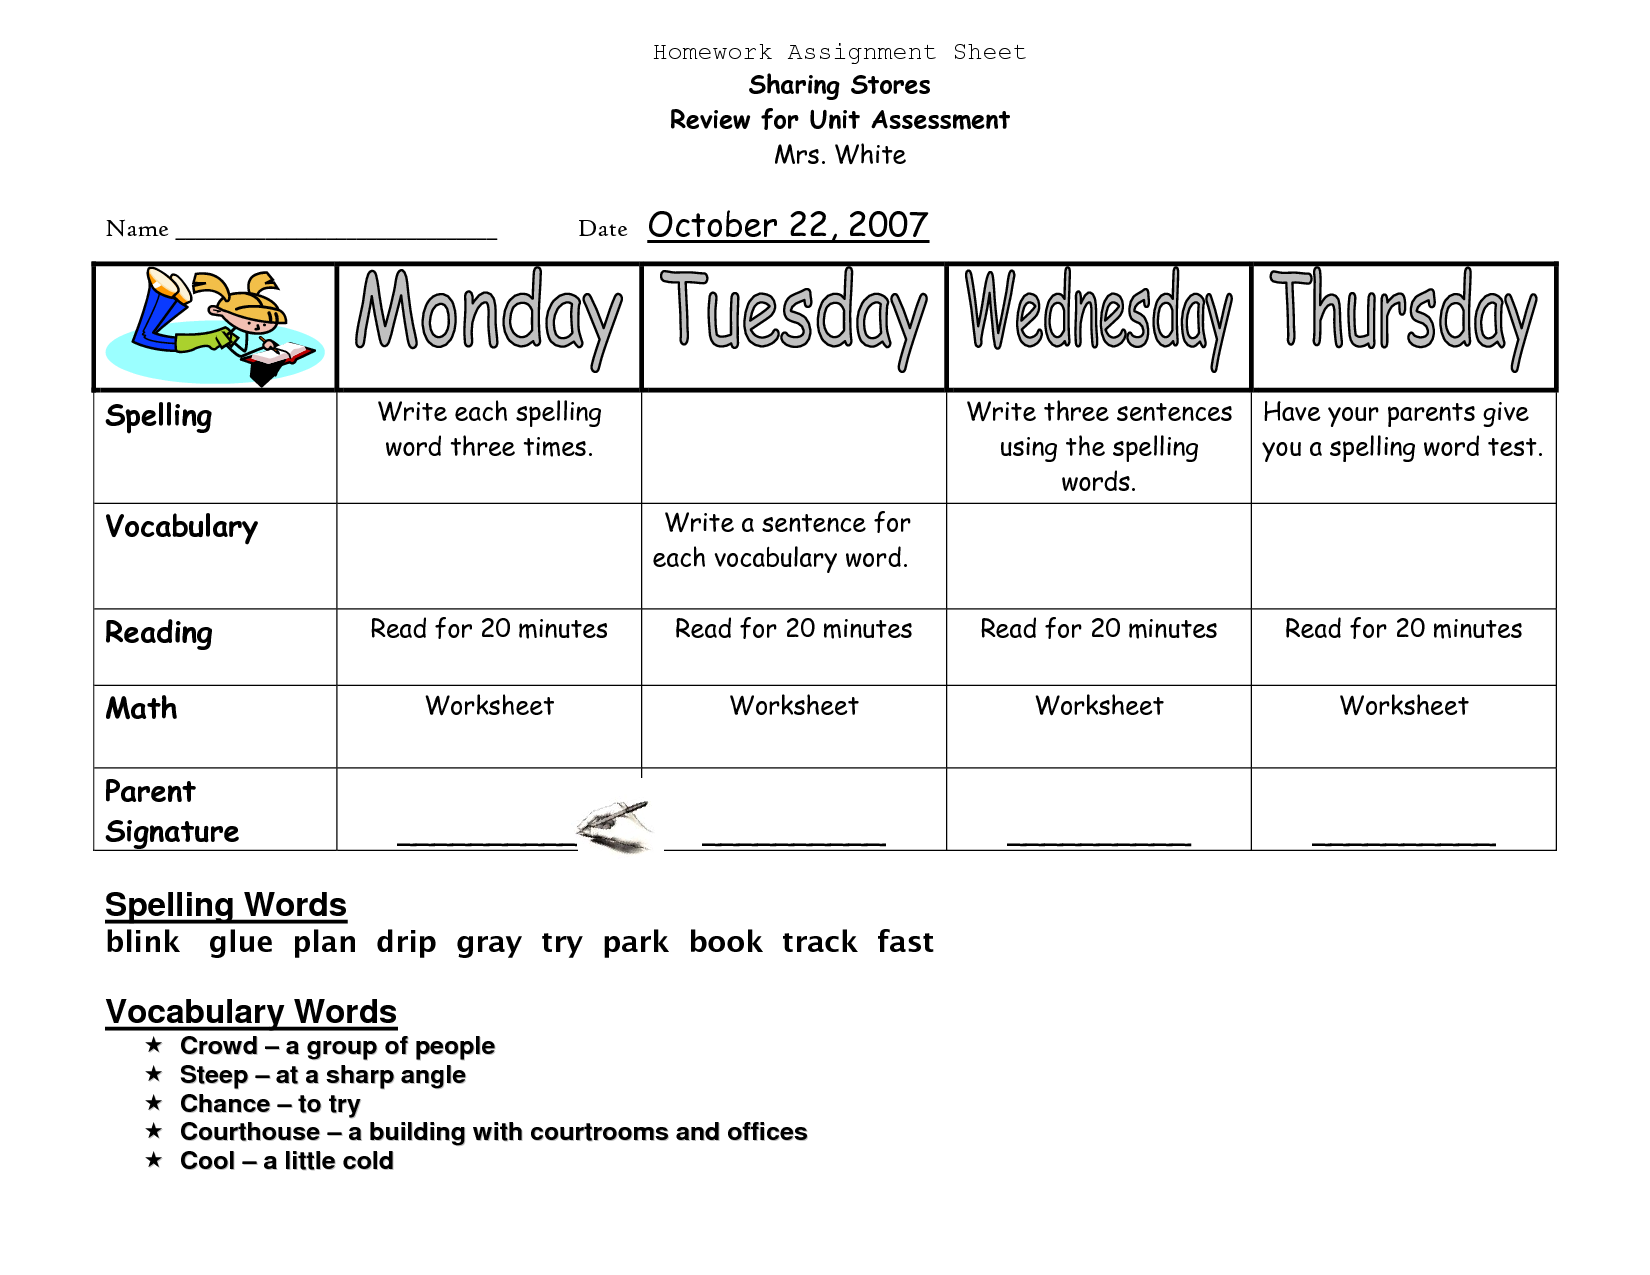 homework sheets for preschoolers | Homework Assignment Sheet ...